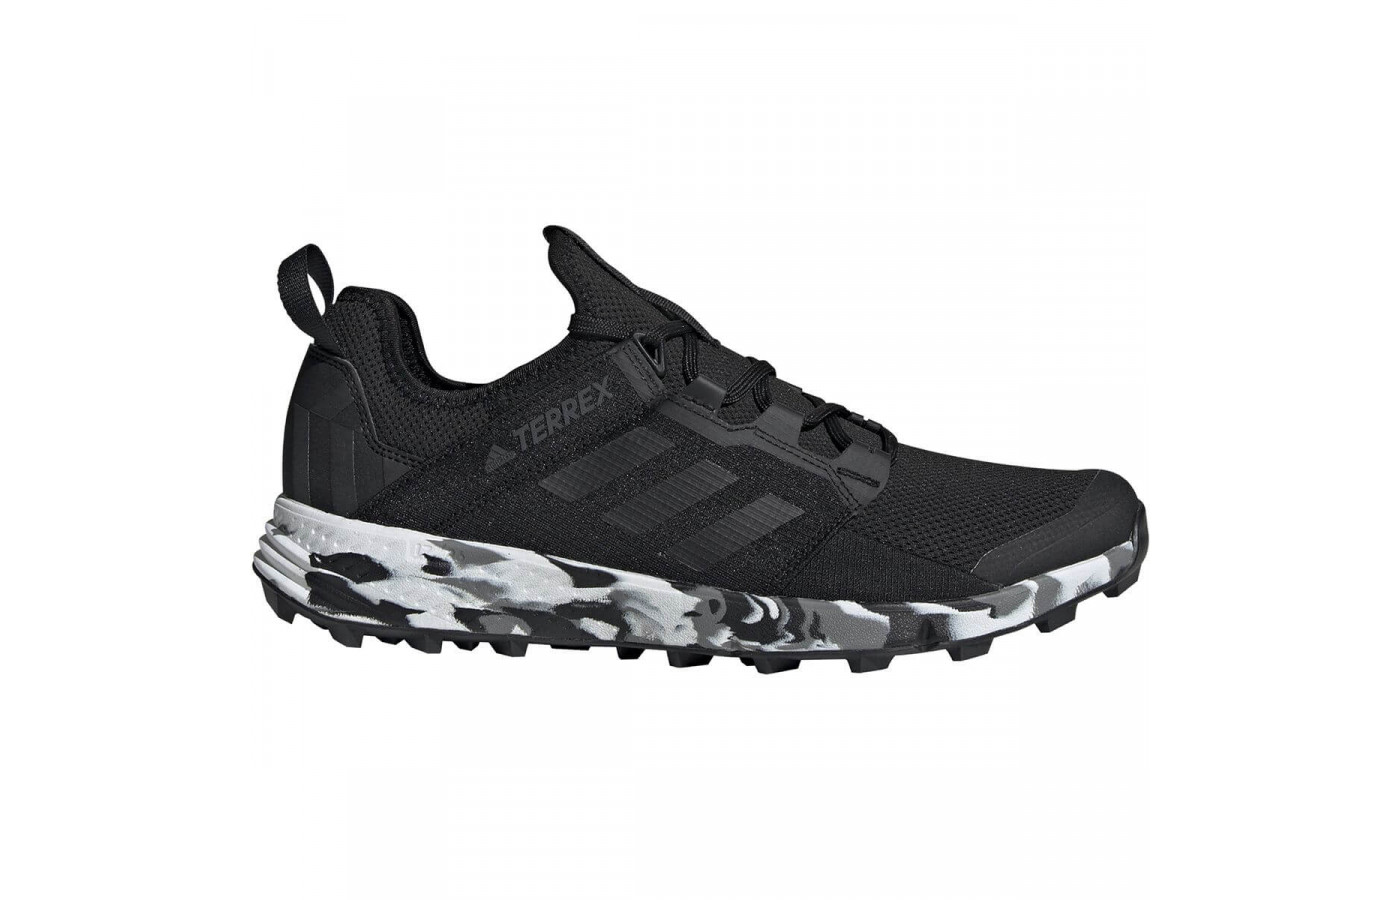 Adidas Outdoor Terrex Agravic Speed Plus side